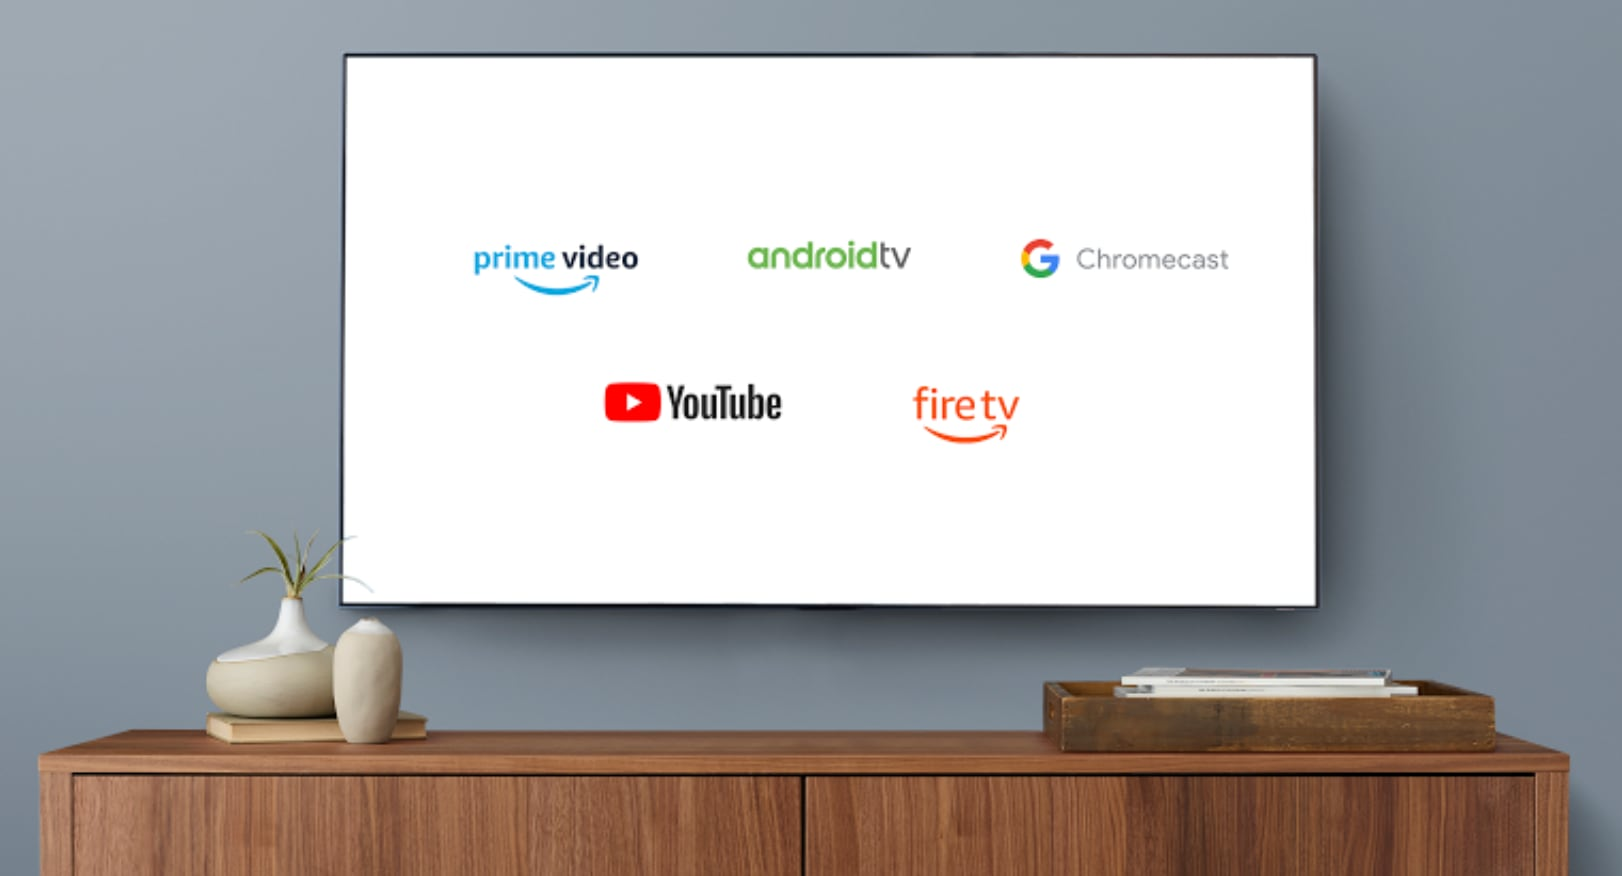 Amazon Prime Video launches on Chromecast, YouTube back on Fire TV